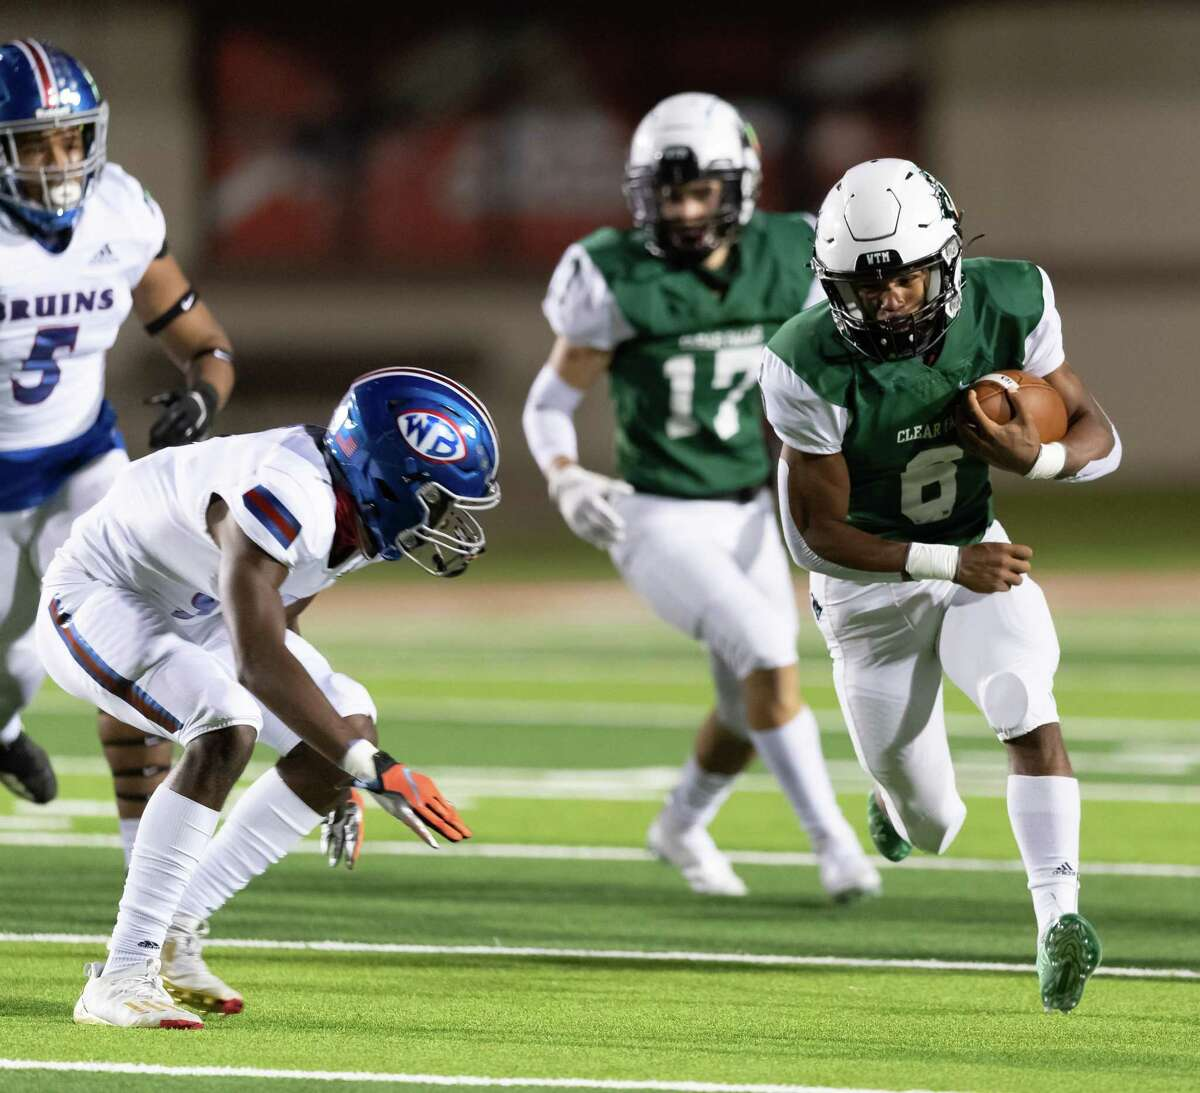 David Smith (6) of the Clear Falls Knights runs around left end in the first half against the West Brook Bruins during a High School football playoff game on Friday, December 18, 2020 at GPISD Stadium in Houston, Texas.